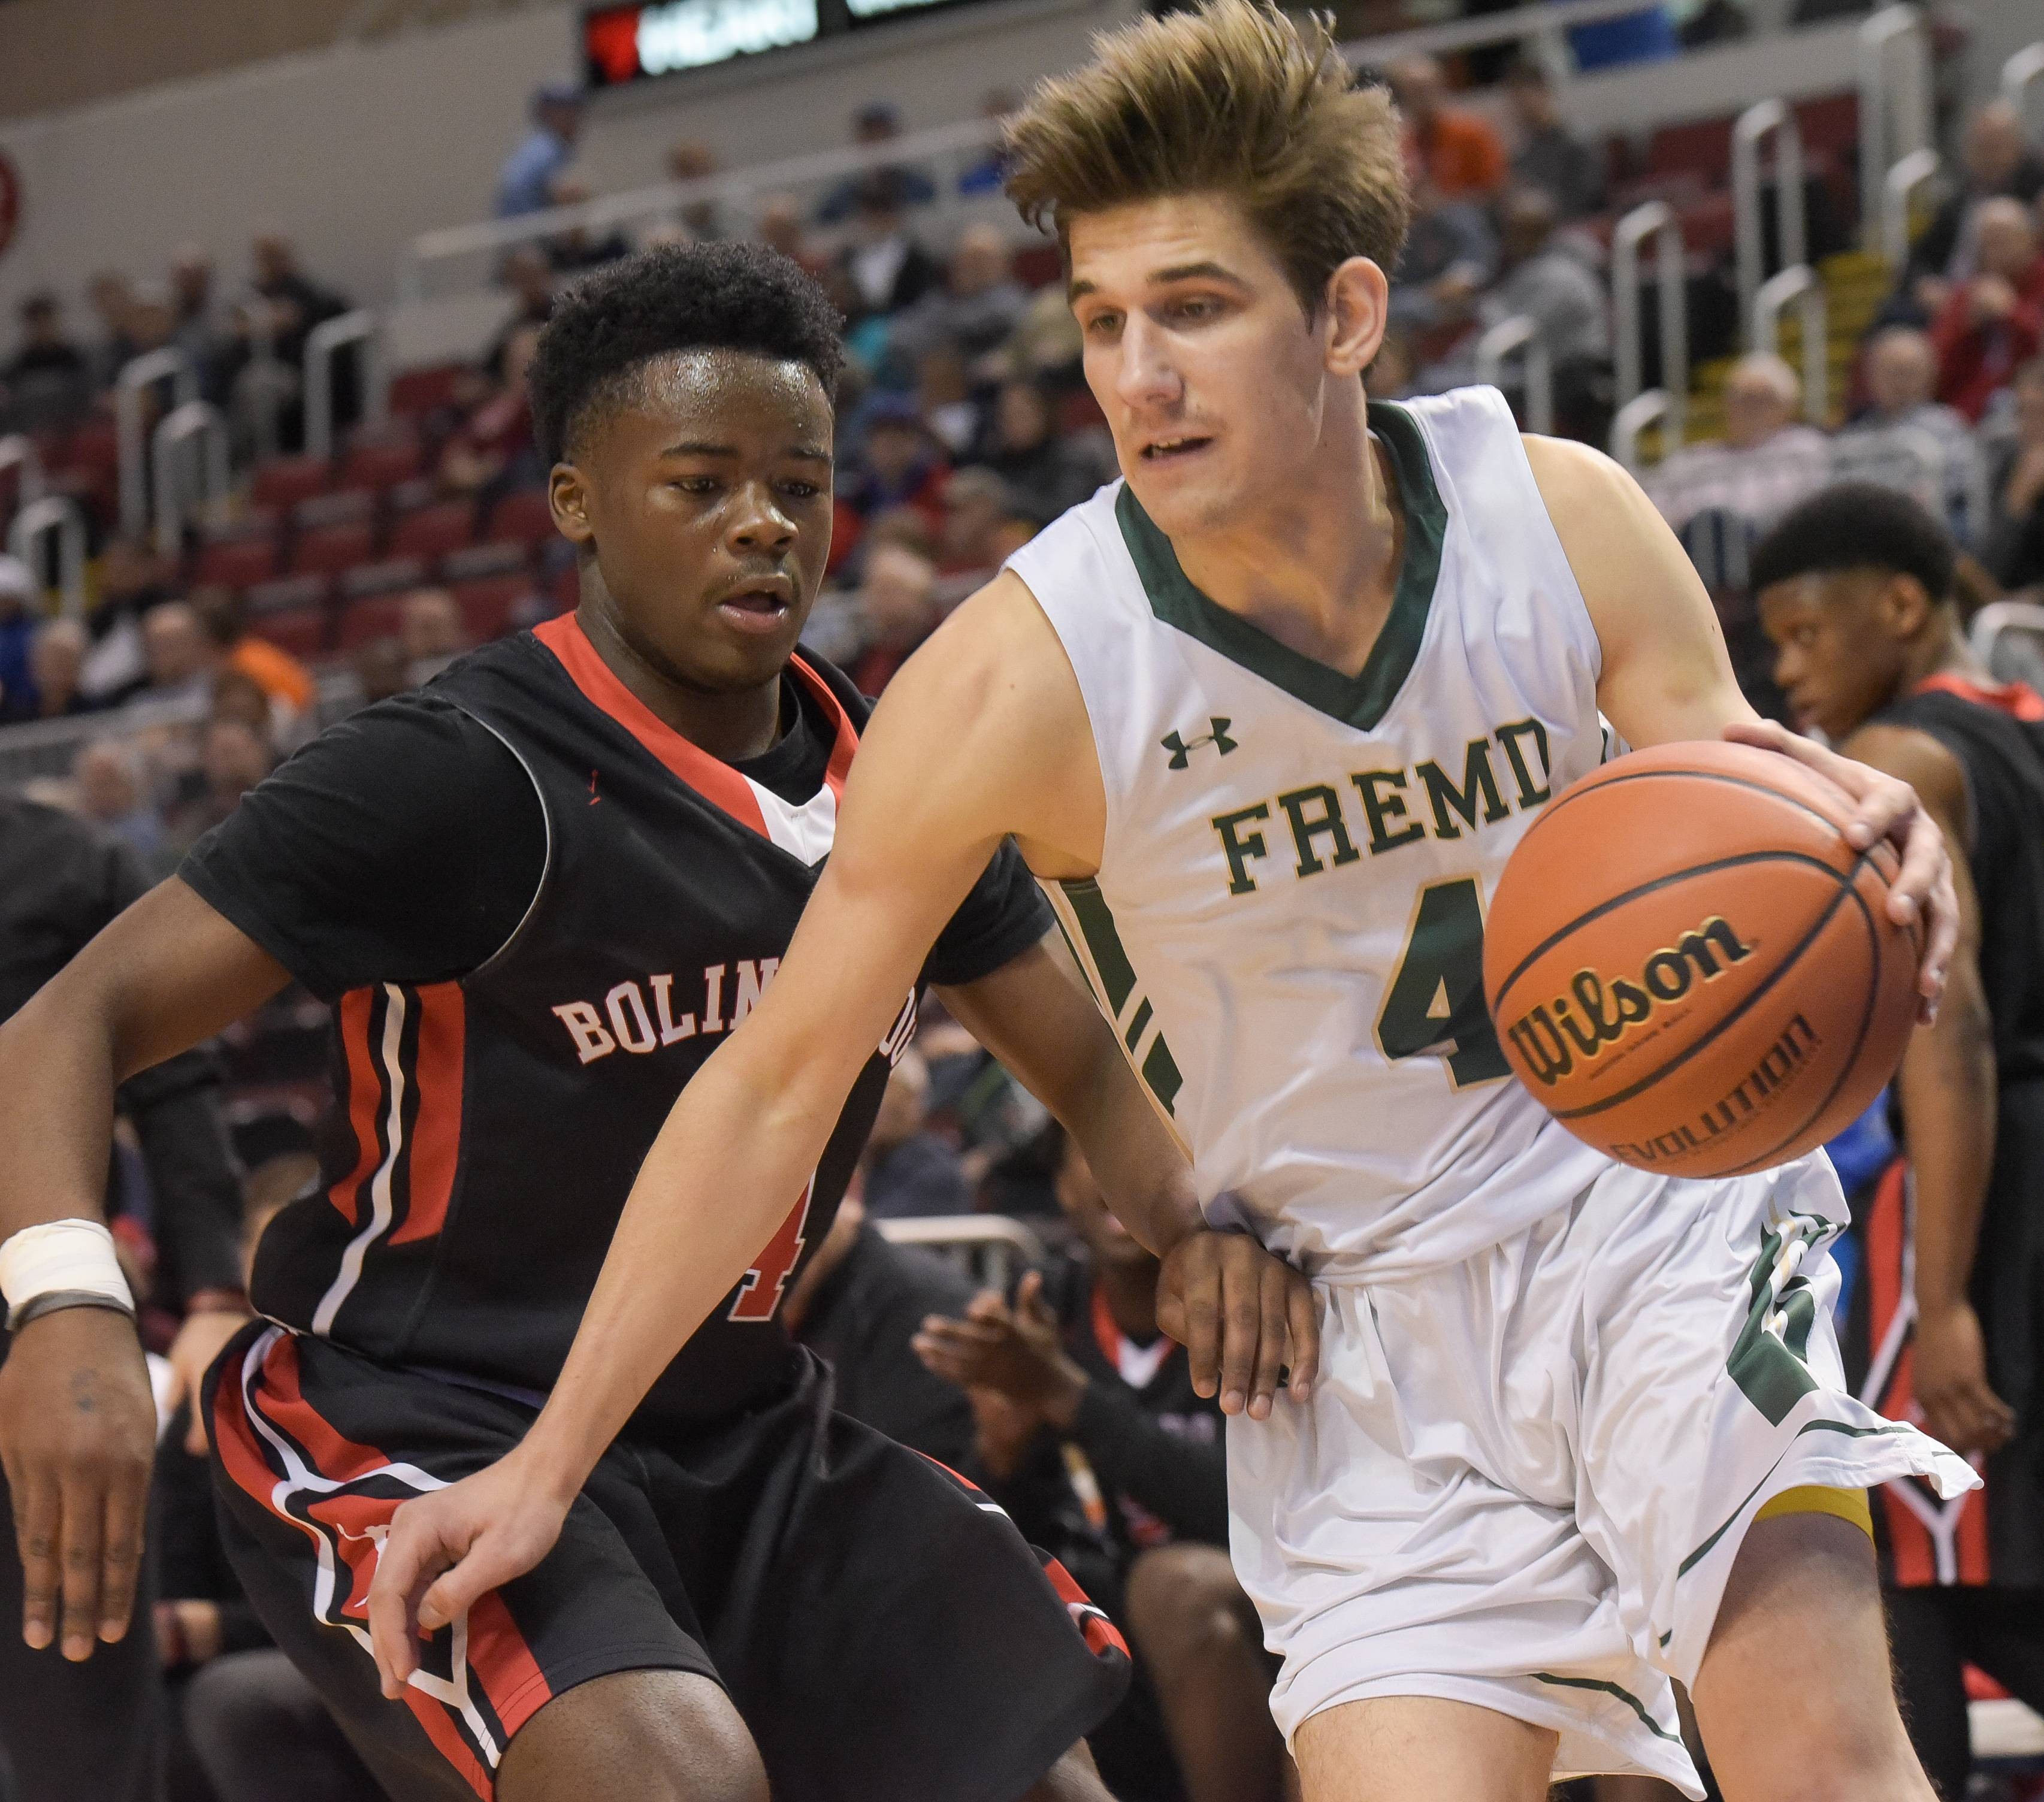 Fremd's Kyle Sliwa drives around Bolingbrook's Isaiah Clemmons during the Class 4A third-place game on Saturday.